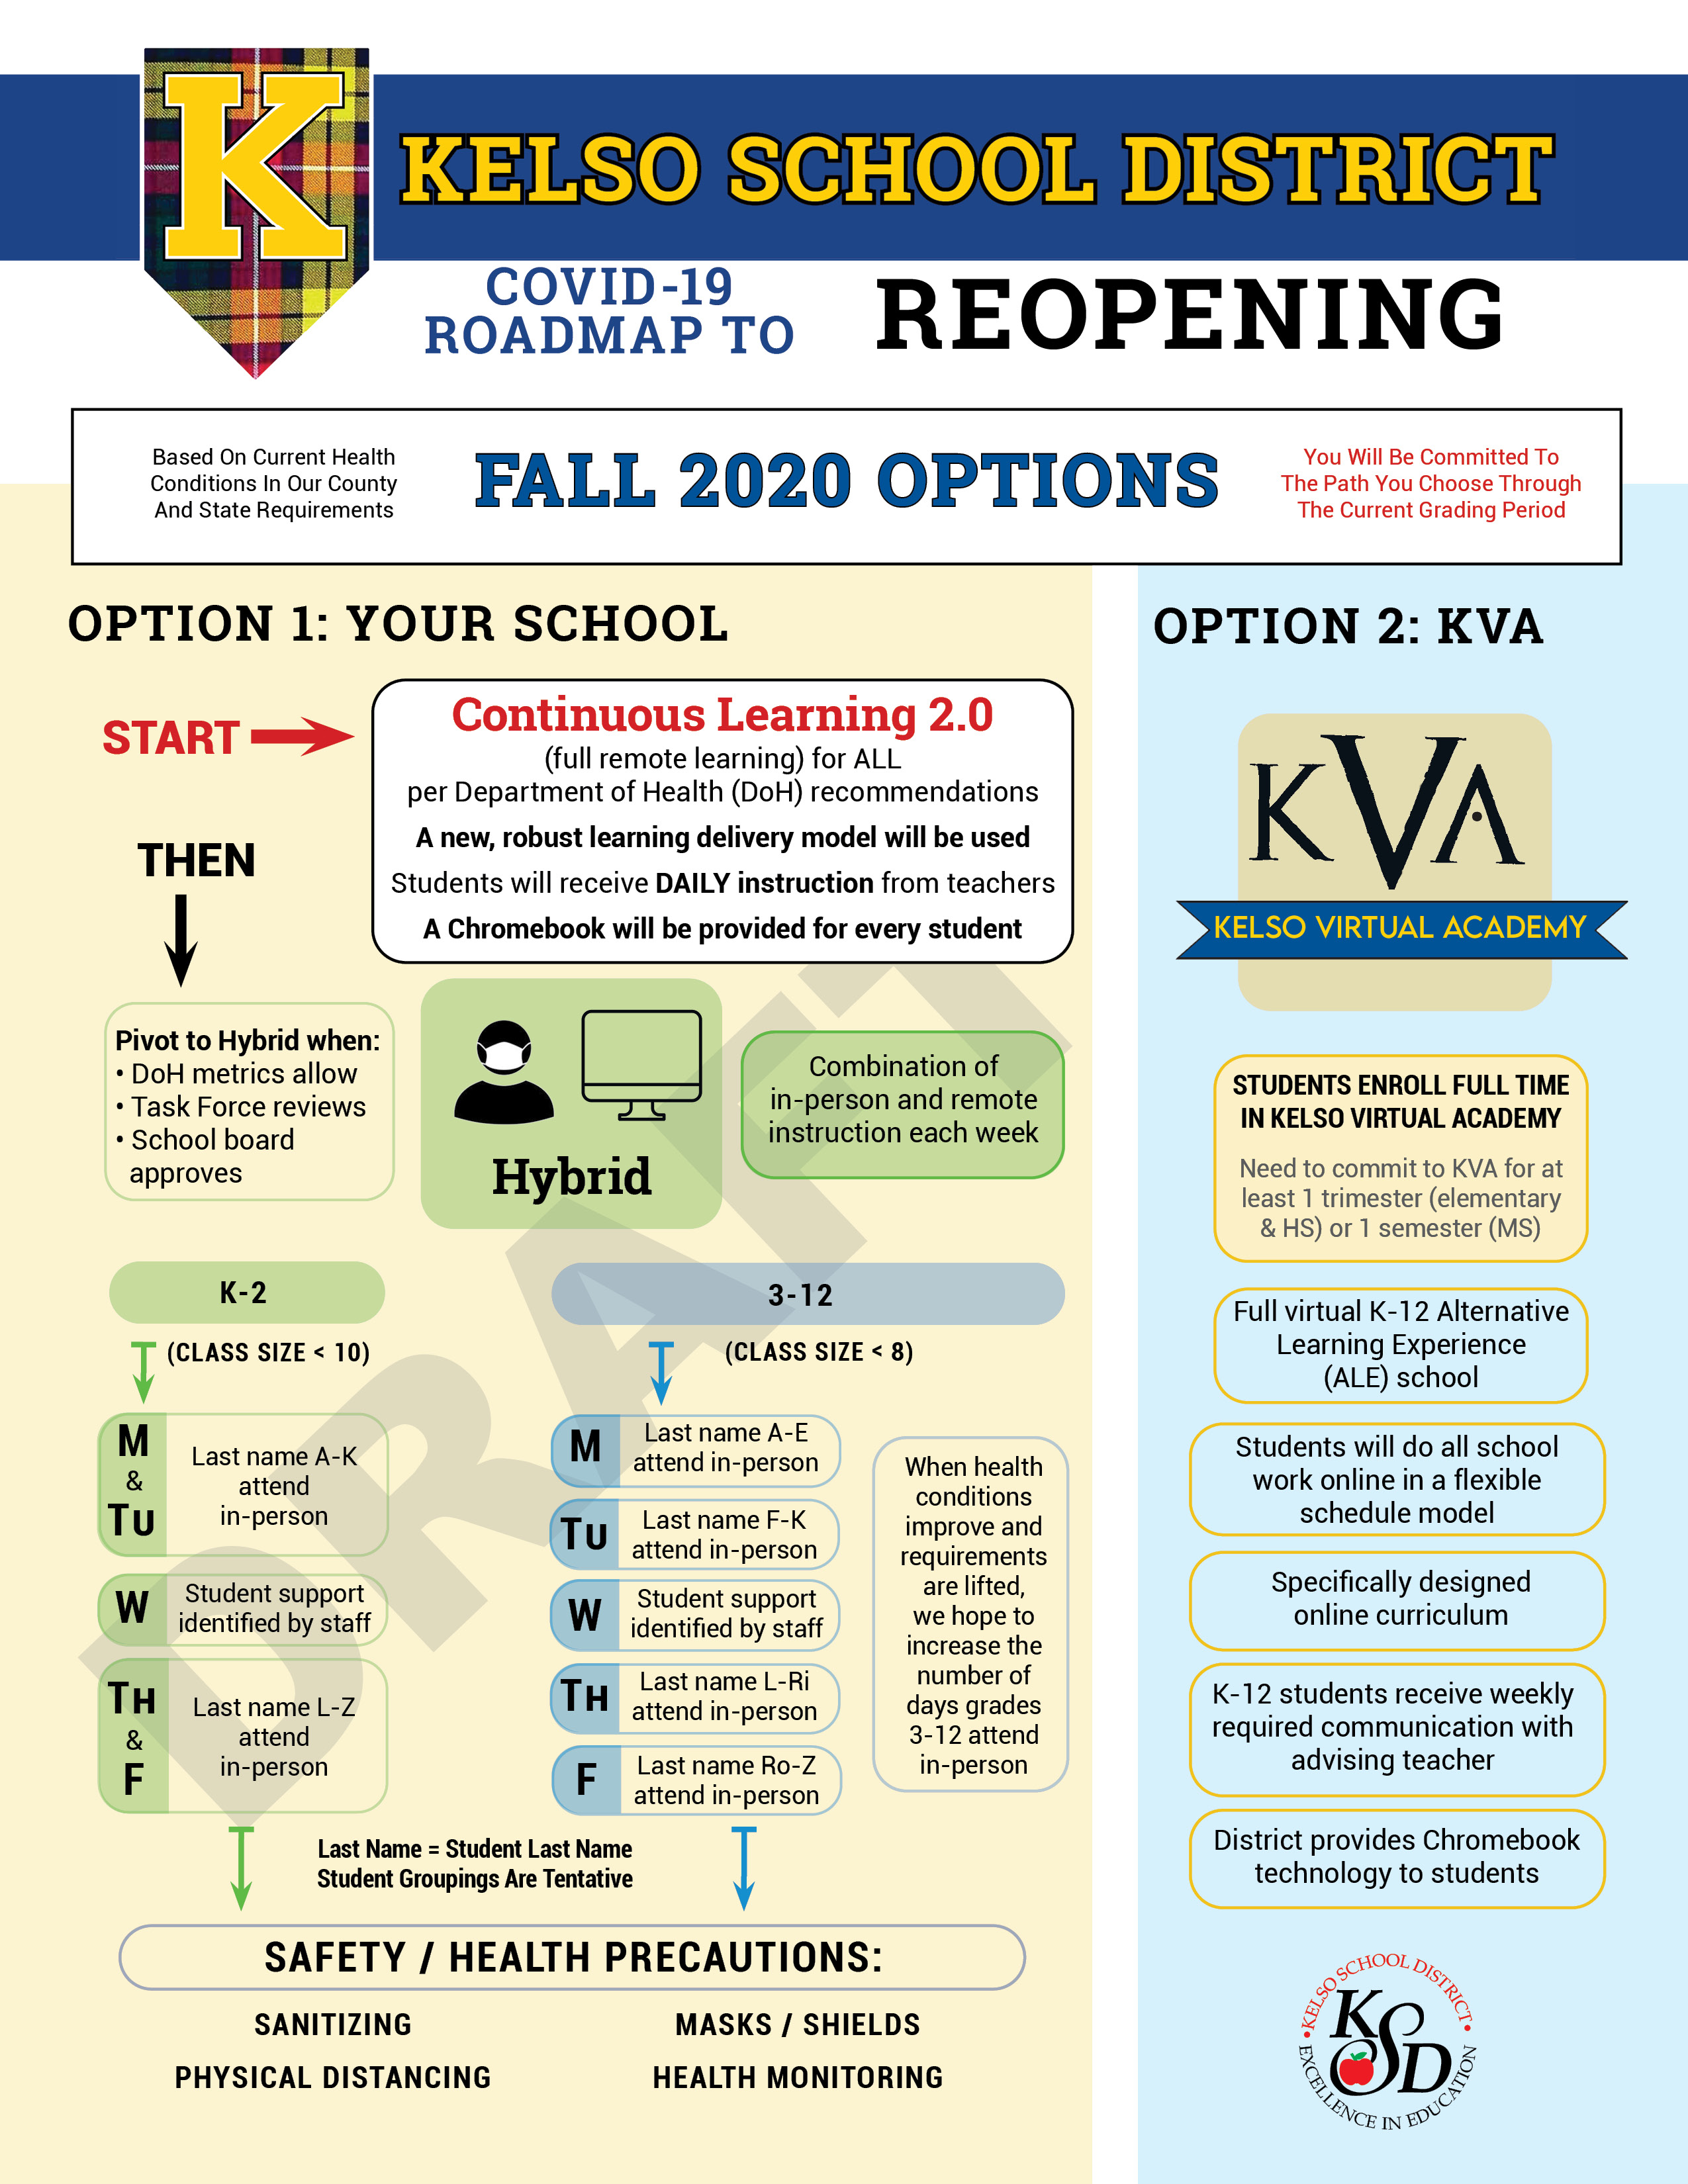 COVID-19 ROADMAP TO REOPENING INFORMATION